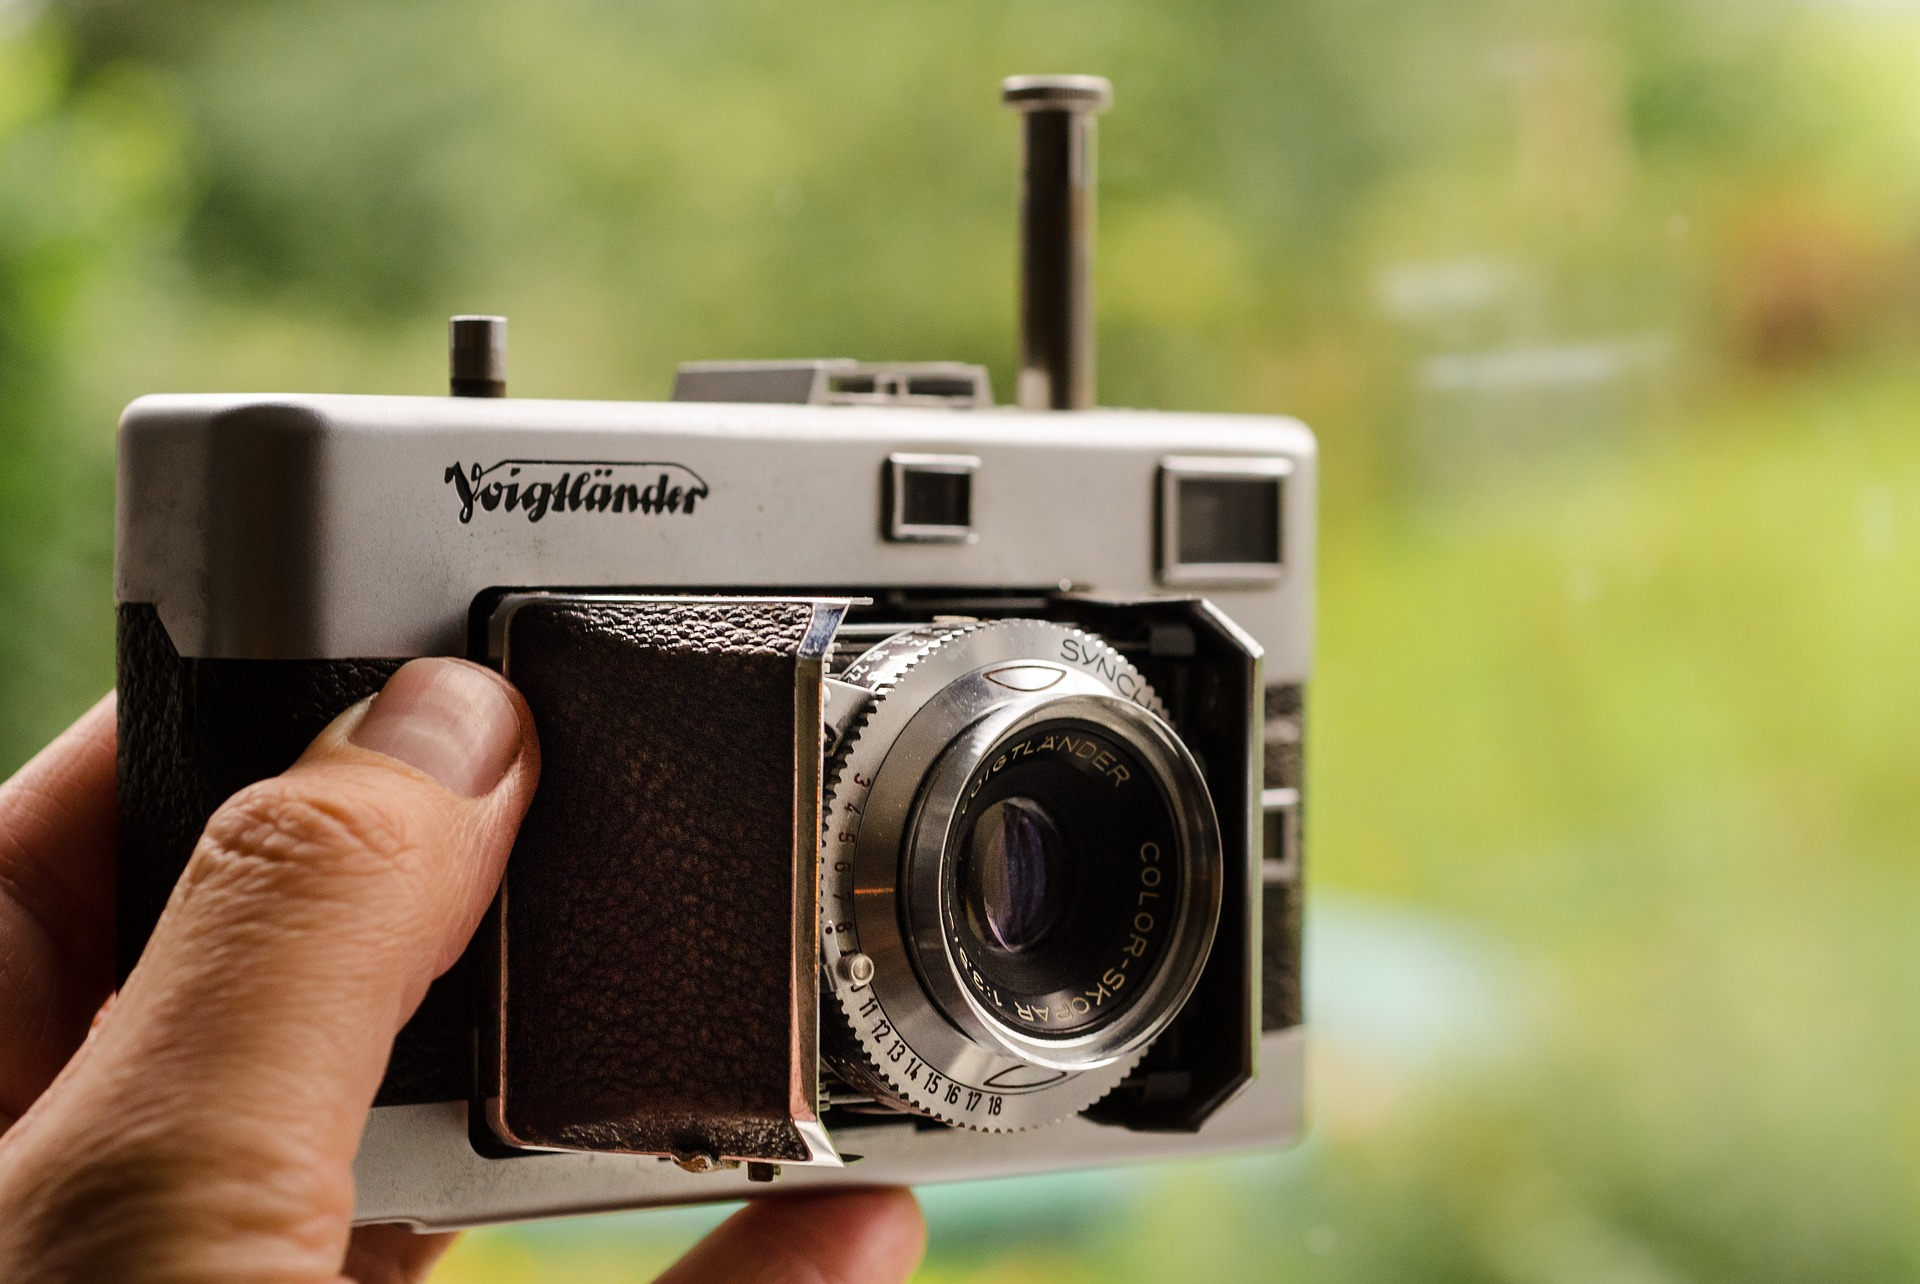 Vintage Camera, Camera, Hold, Lens, Object, HQ Photo